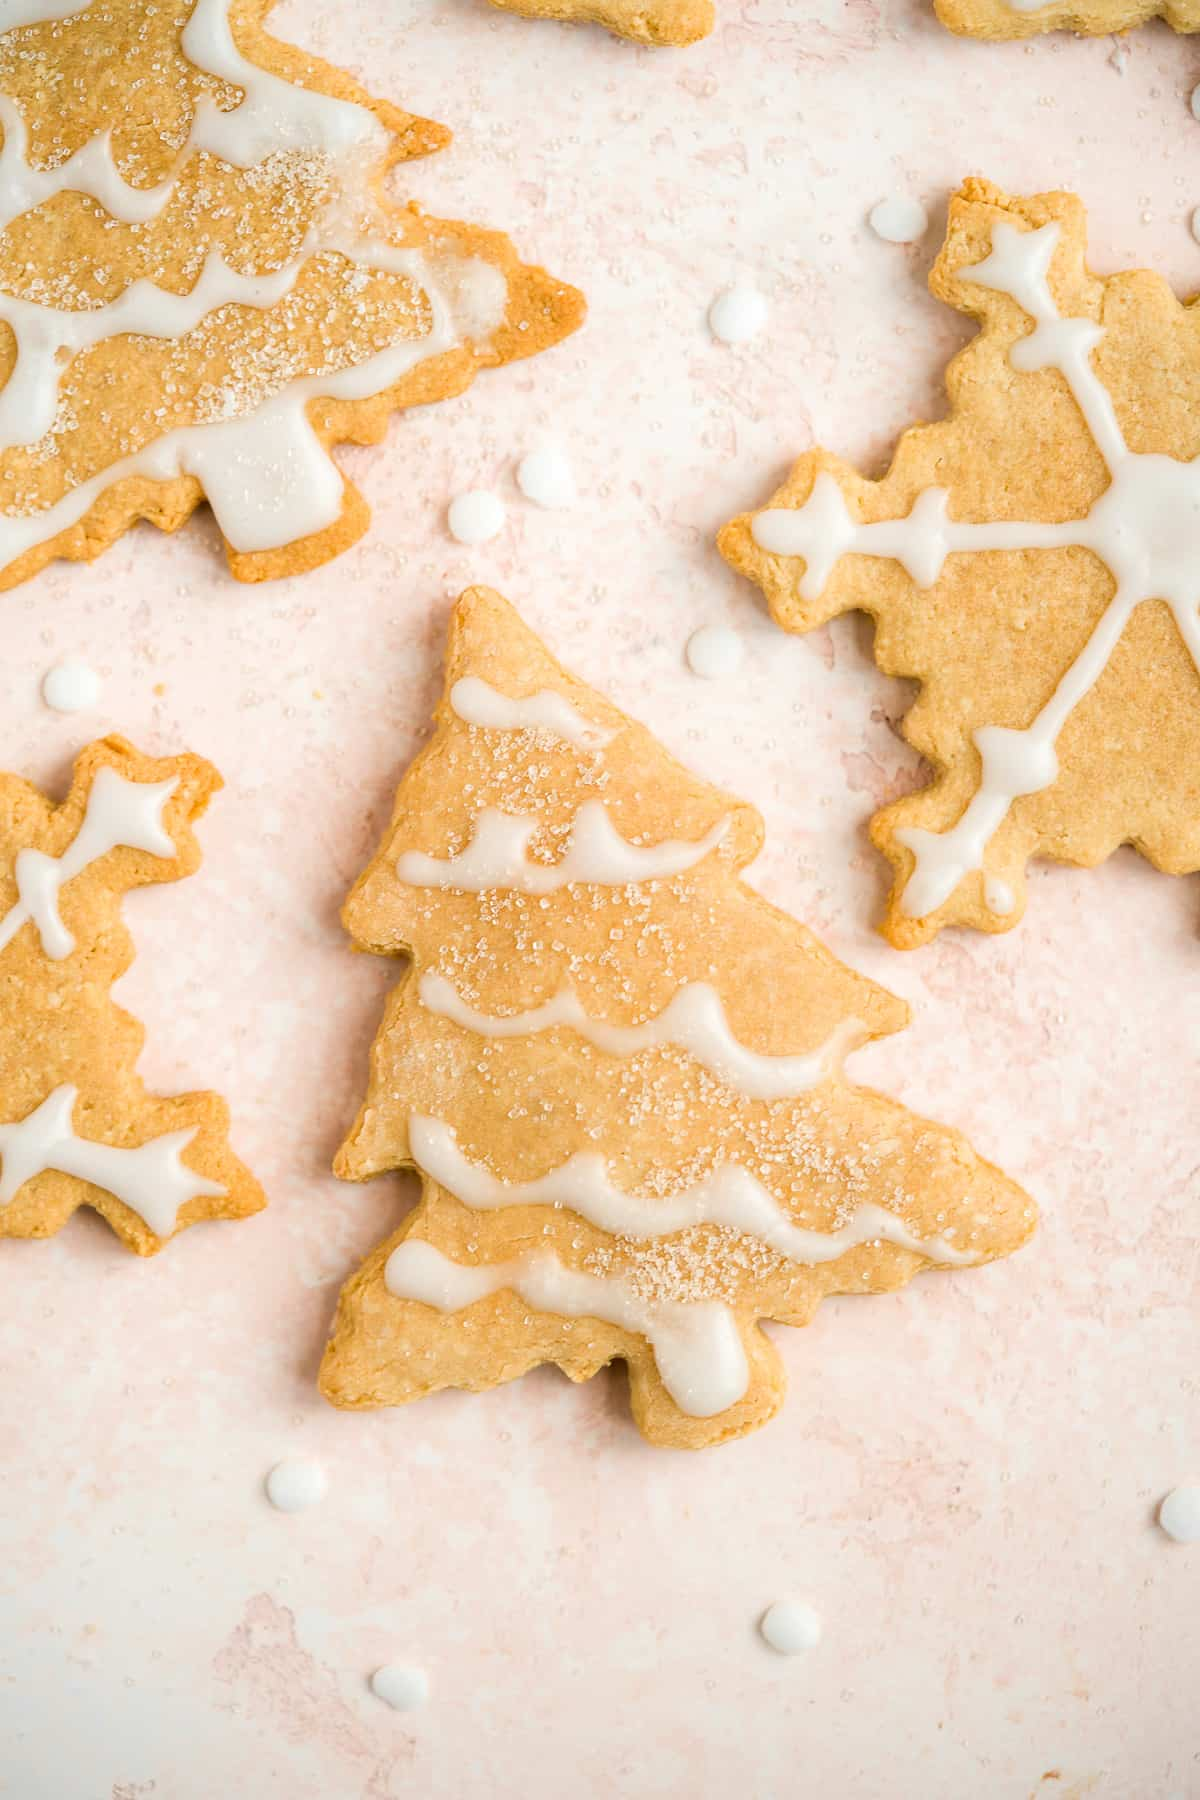 Close up photo of snowflake and Christmas tree shaped cookies with white icing.